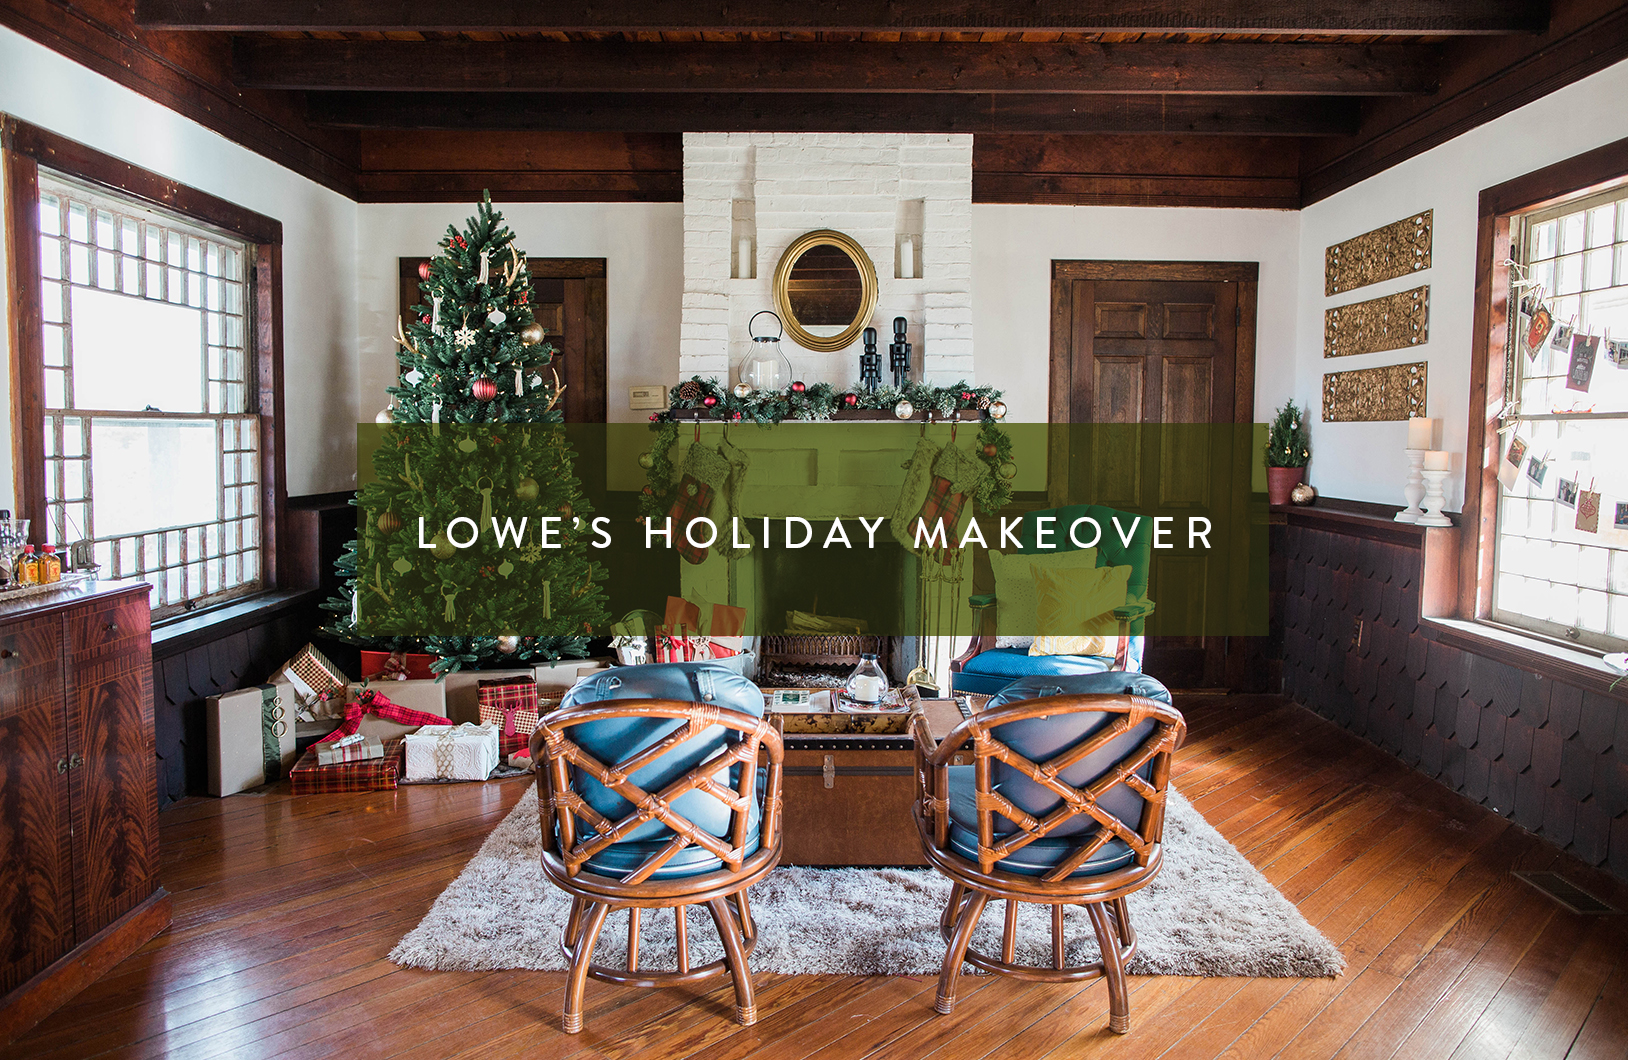 Lowe's Holiday Makeover